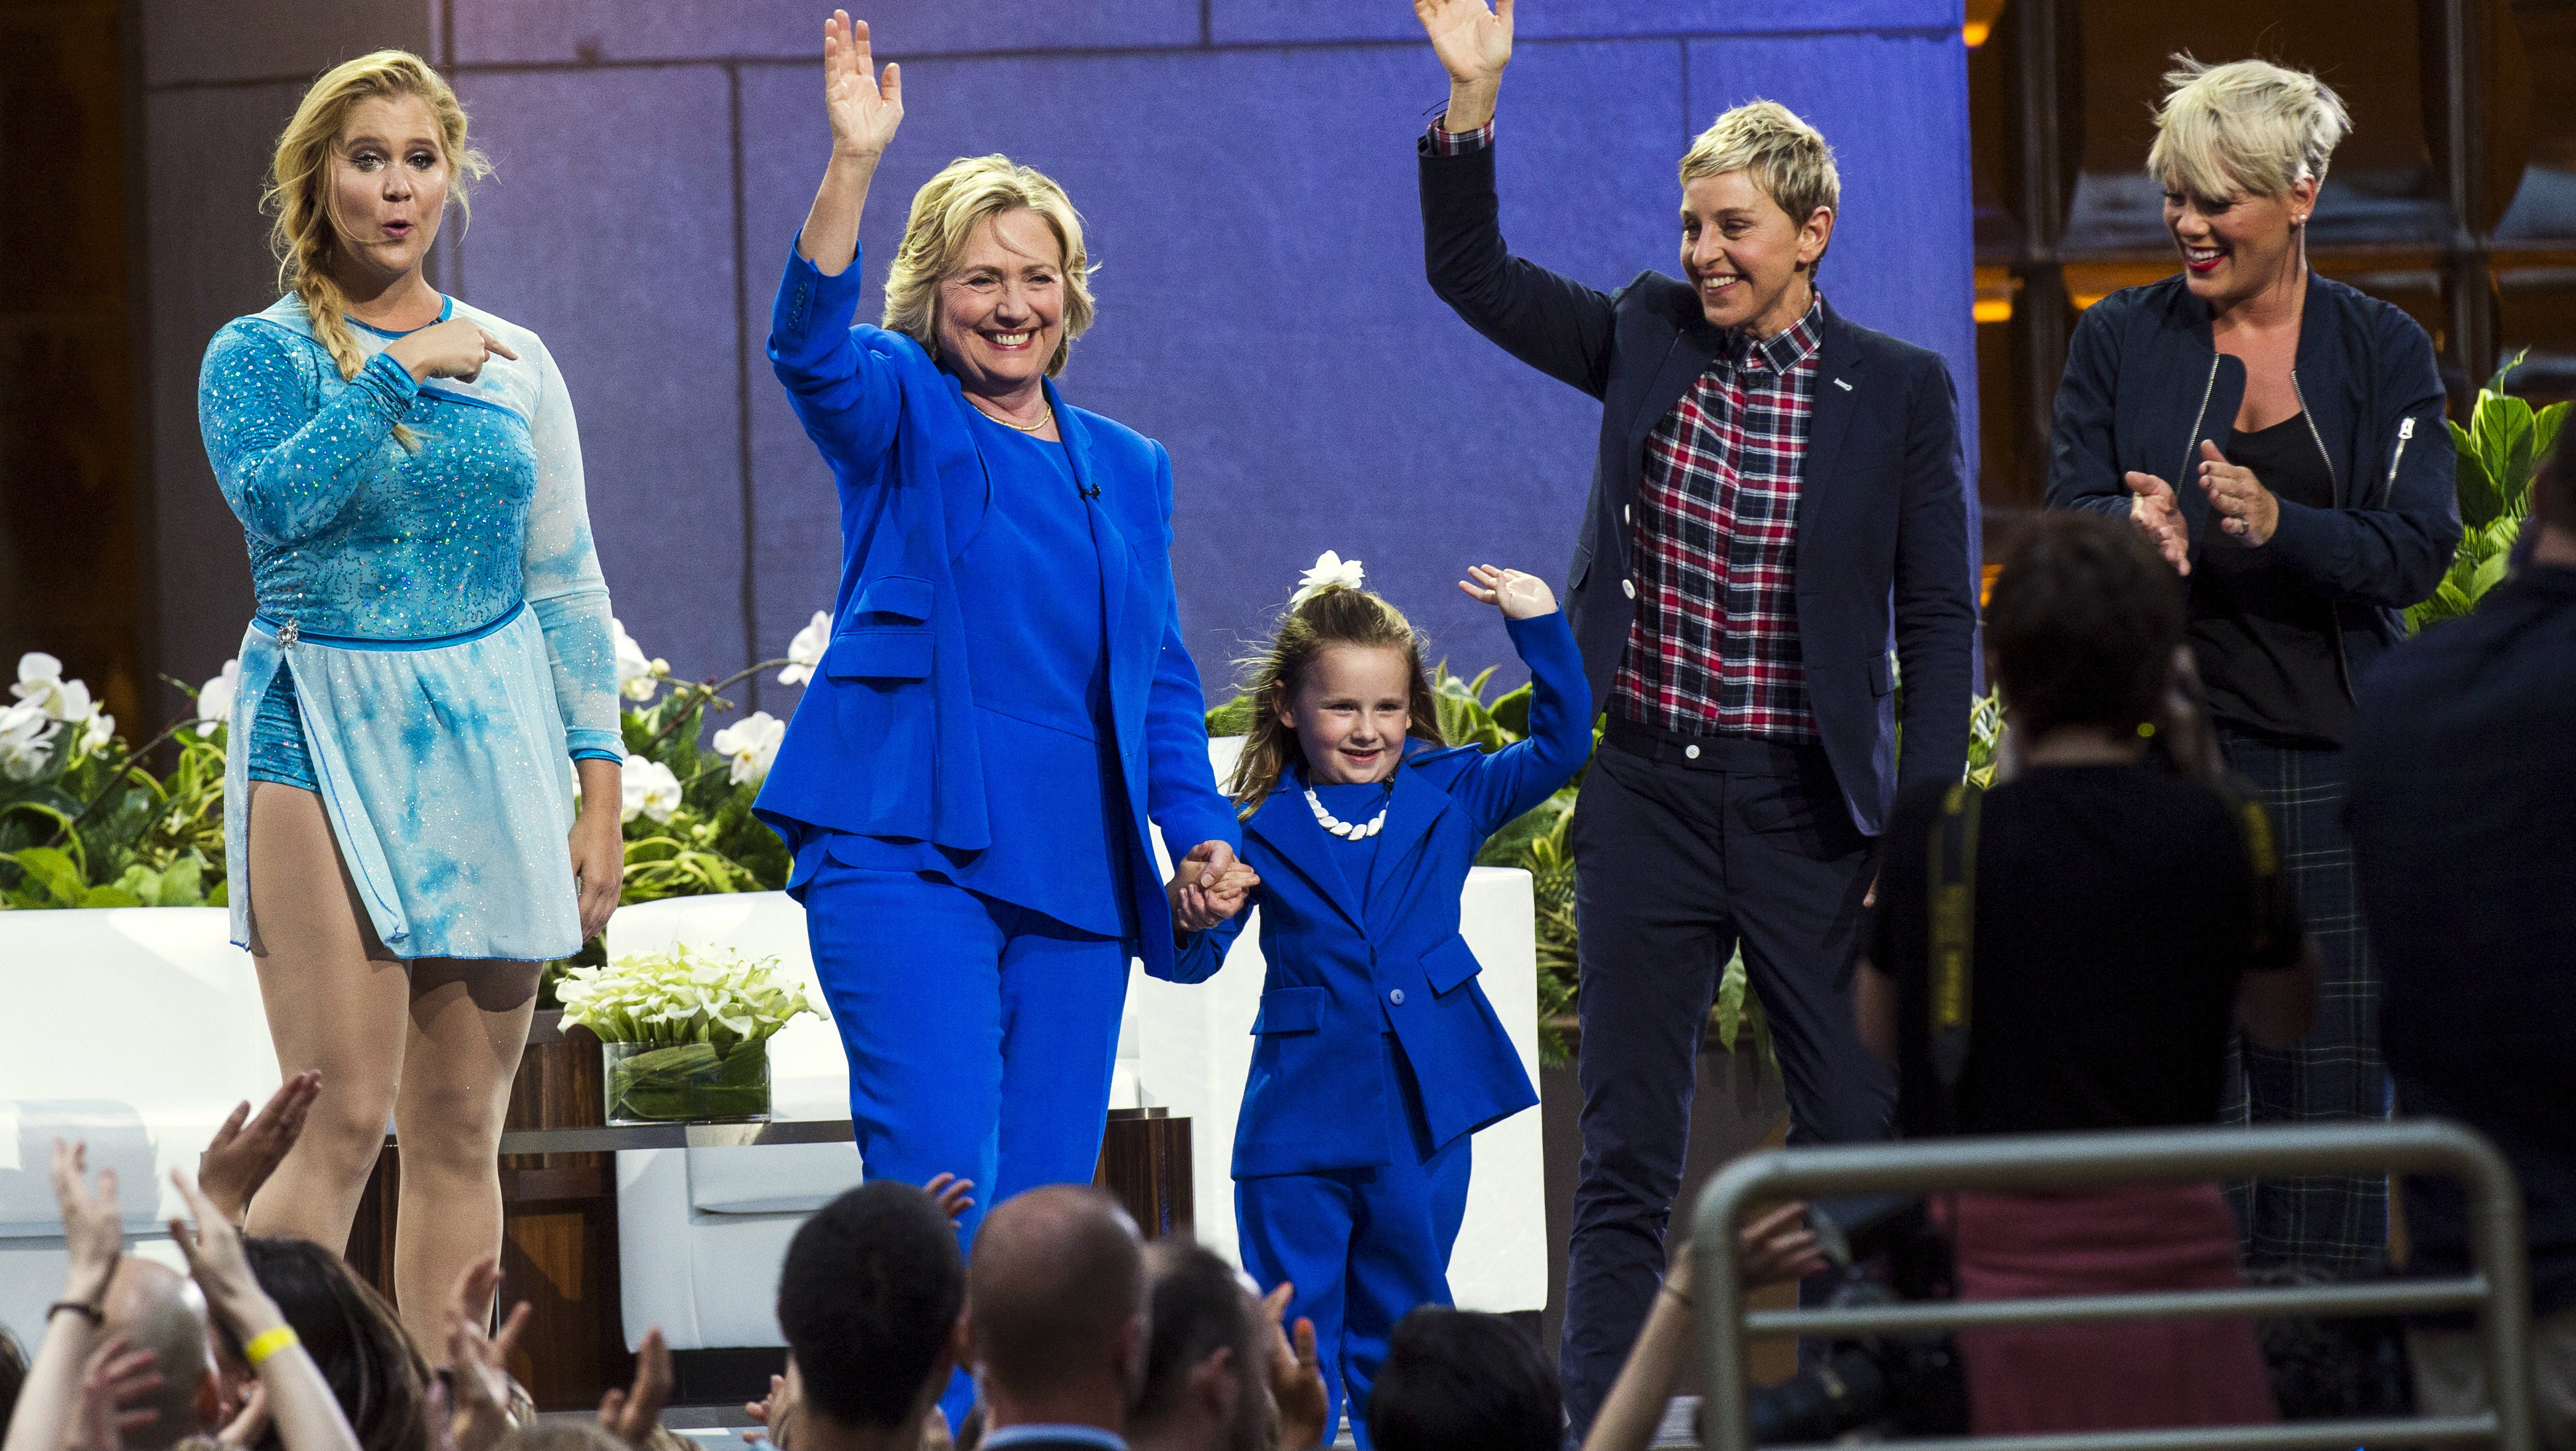 """DATE IMPORTED:September 08, 2015U.S. Democratic presidential candidate Hillary Clinton (2nd L) waves with (L-R) comedian Amy Schumer, 5-year-old presidential expert Macey Hensley, television host Ellen DeGeneres, and singer Pink during a taping of """"The Ellen DeGeneres Show"""" in New York September 8, 2015. REUTERS/Lucas Jackson"""